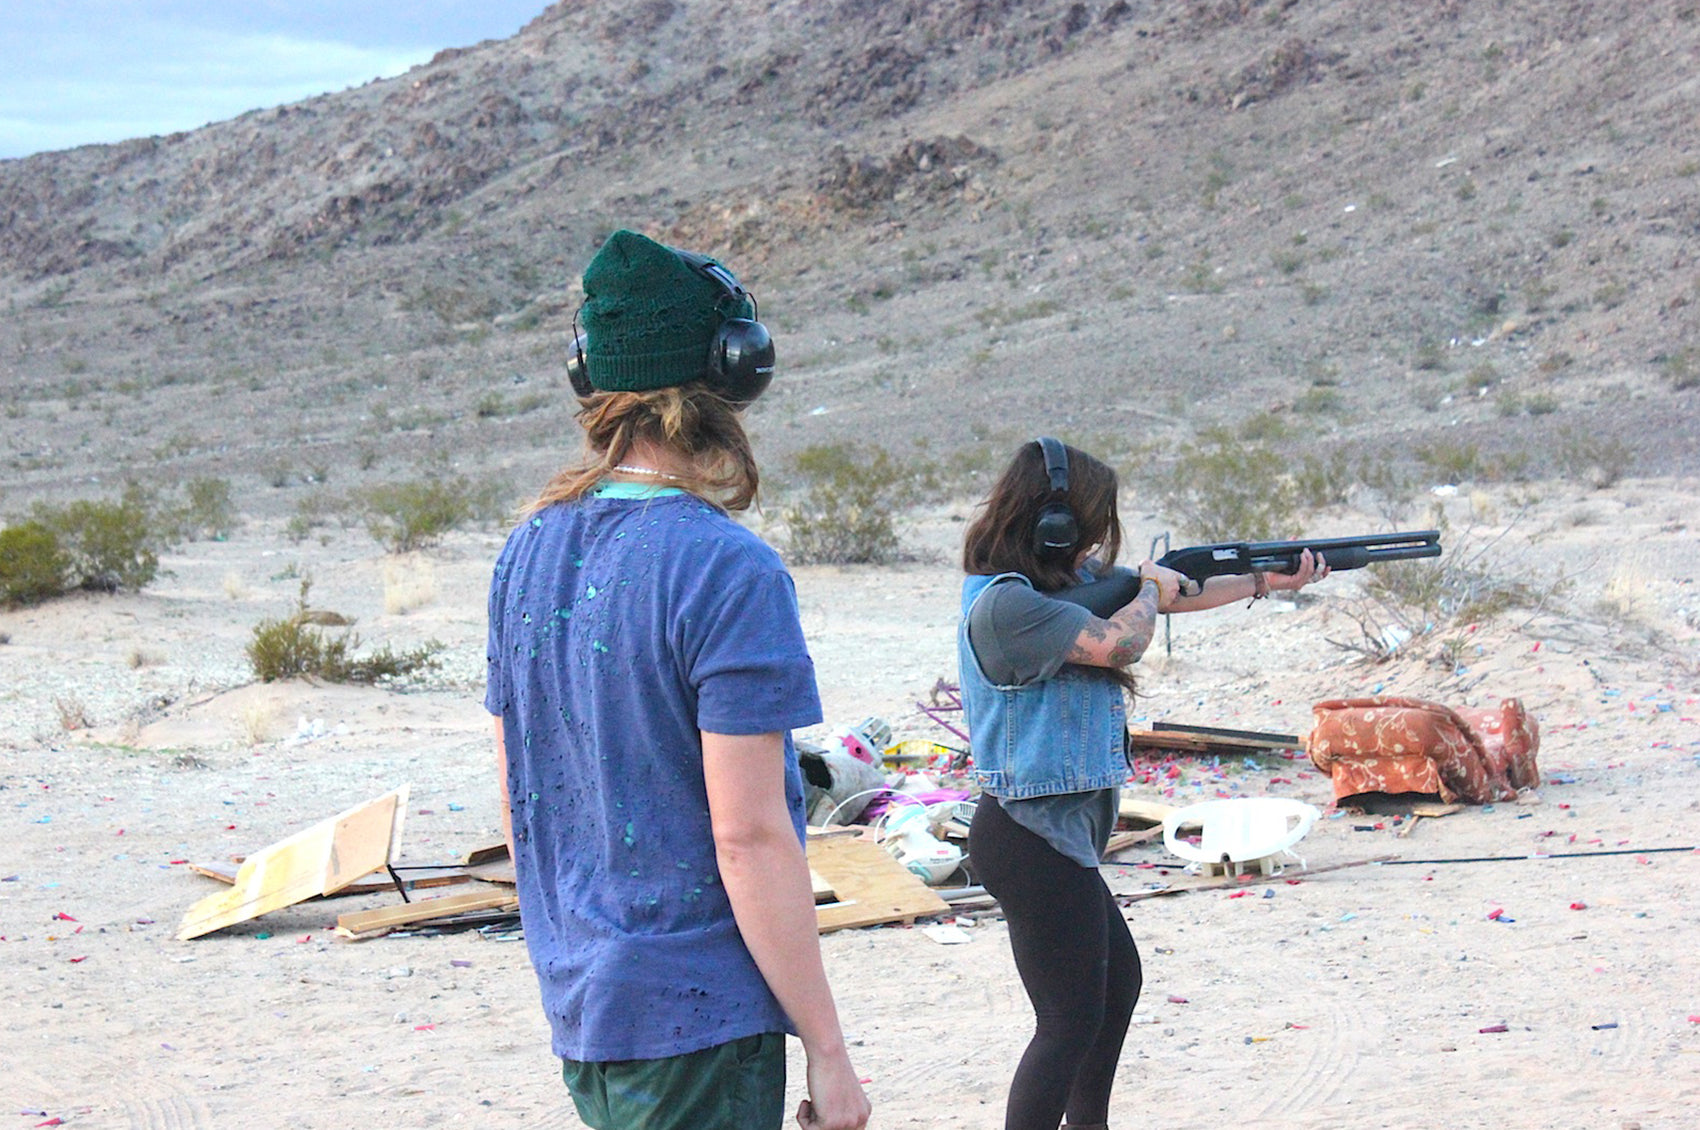 Shotgunning clothes in the desert.